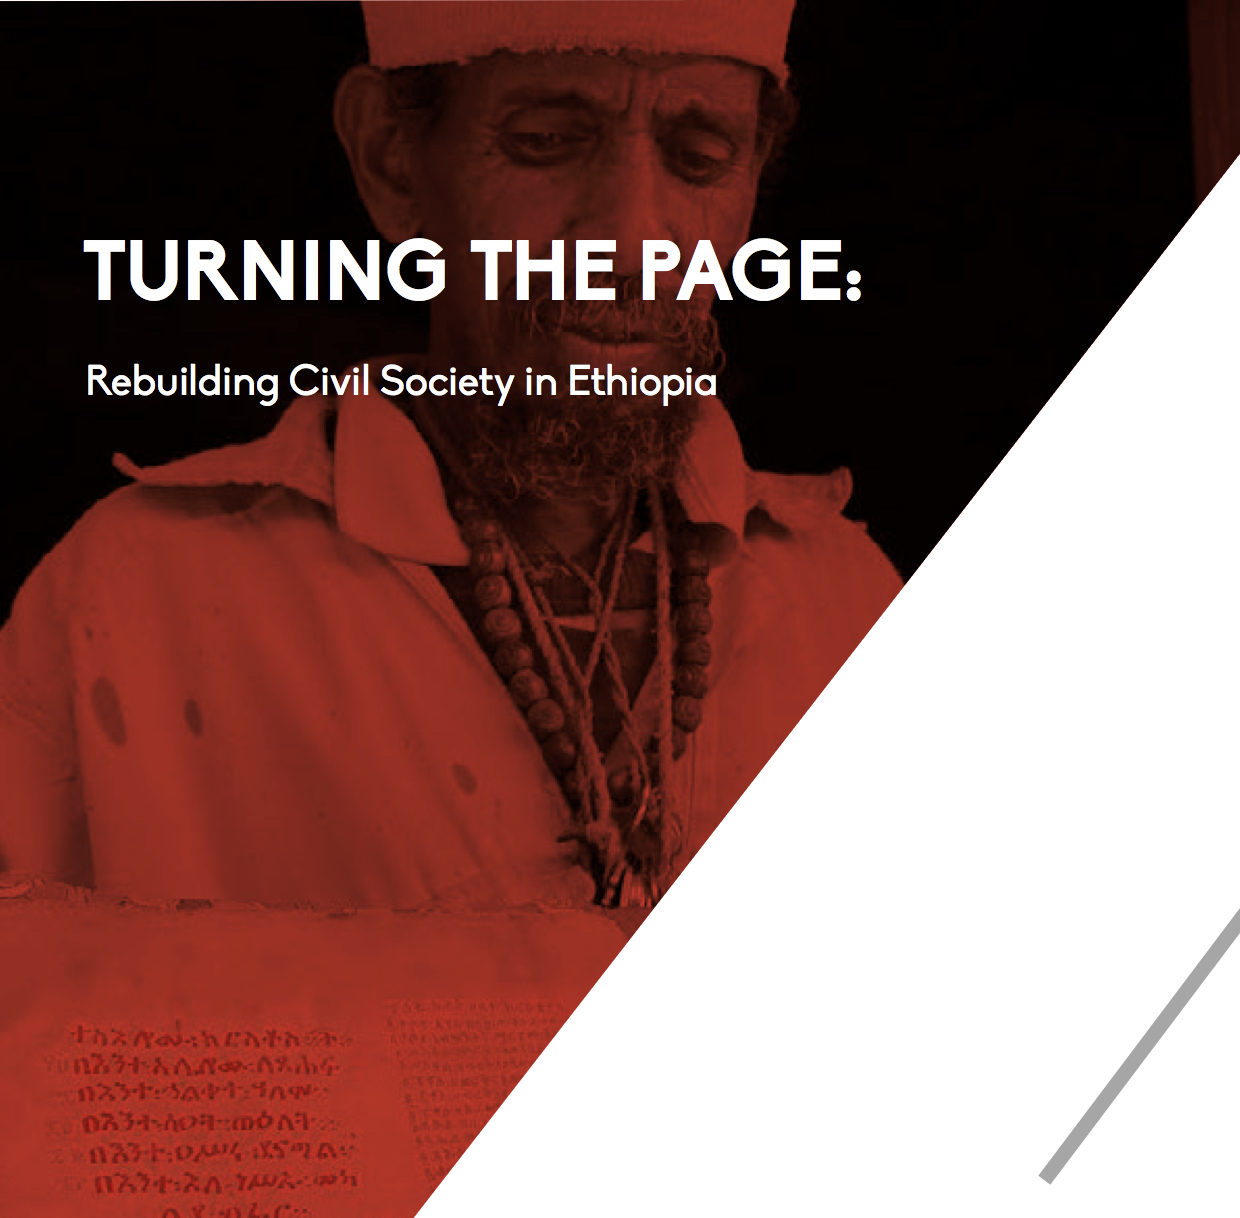 DefendDefenders | Turning the Page: Rebuilding Civil Society in Ethiopia